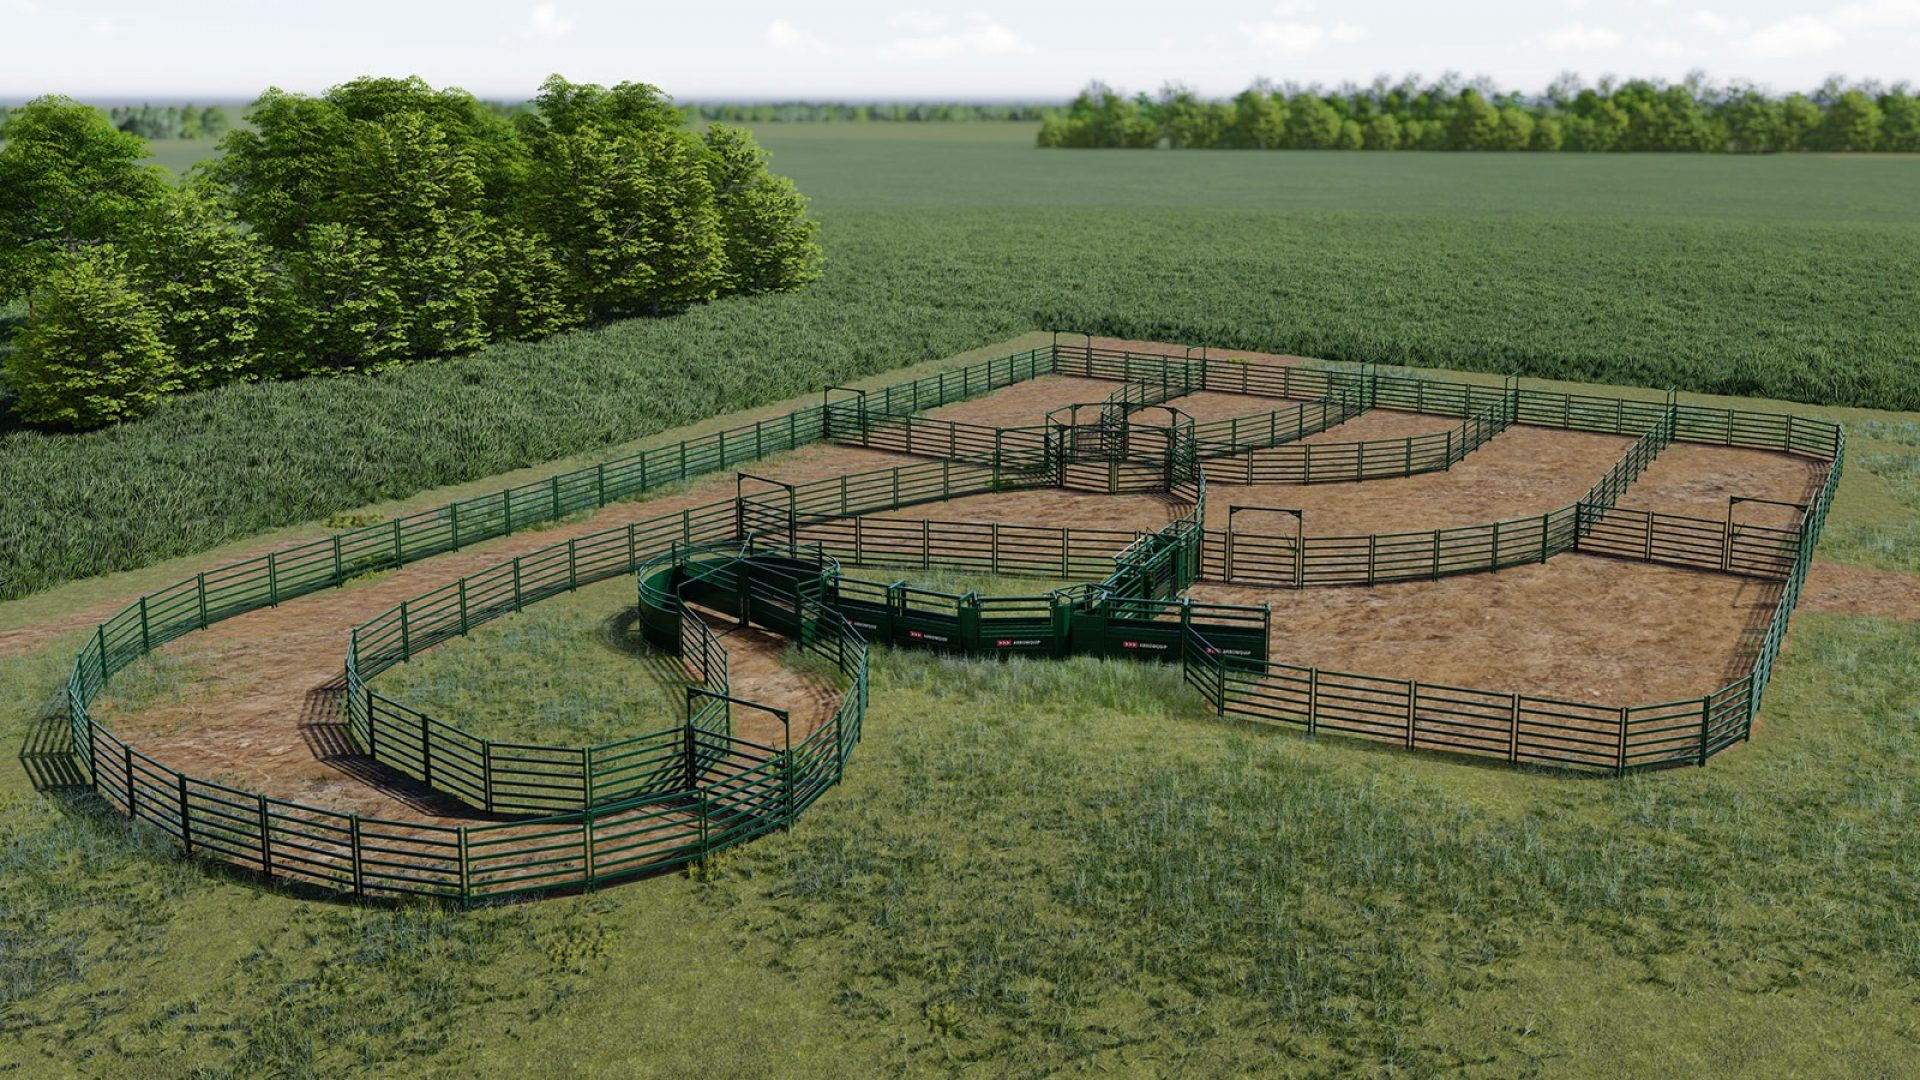 Custom cattle handling system design with cattle drafting pound and squeeze chute